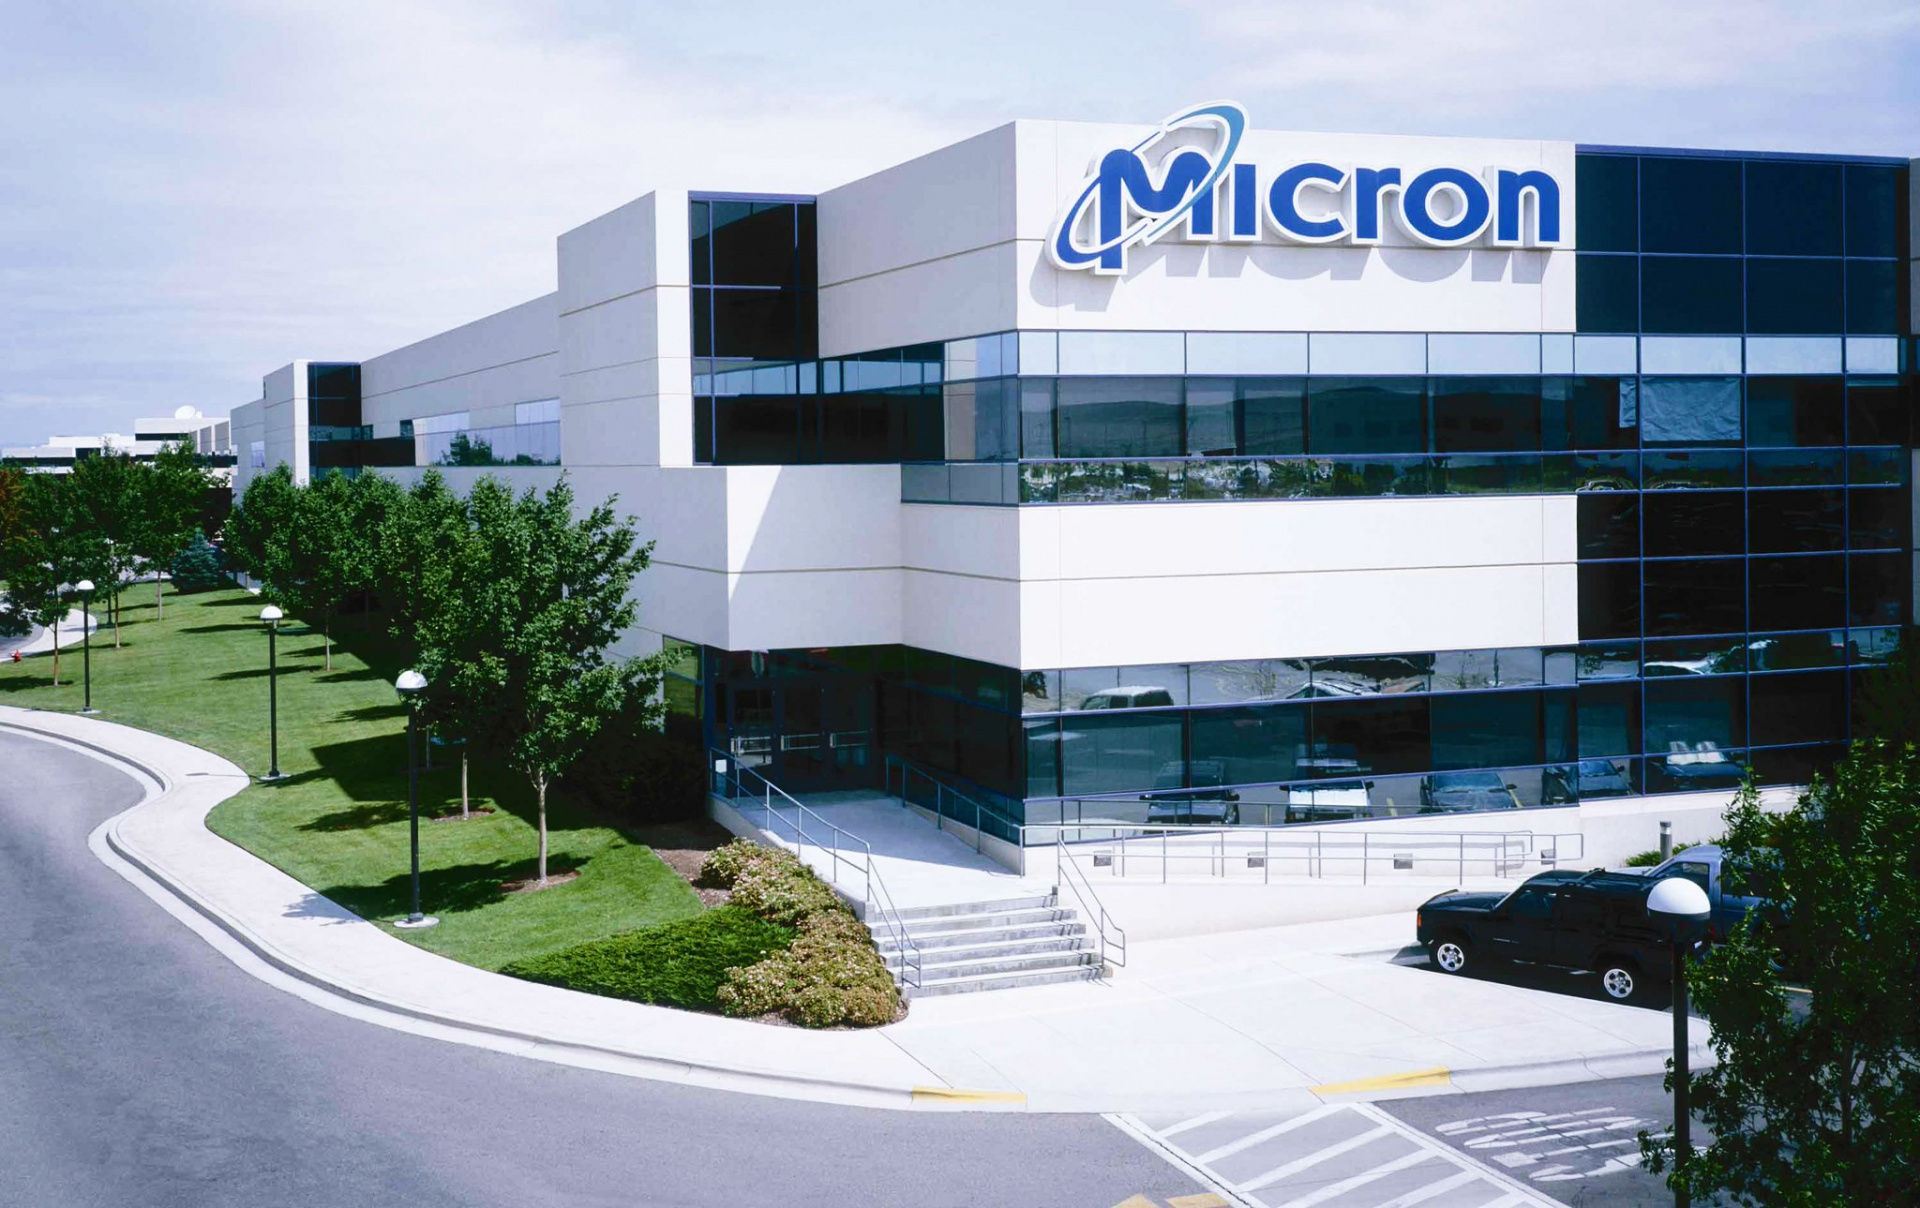 Micron Technology: Outstanding Quarterly Results Overshadowed by Weak Guidance Due to Supply Bottlenecks